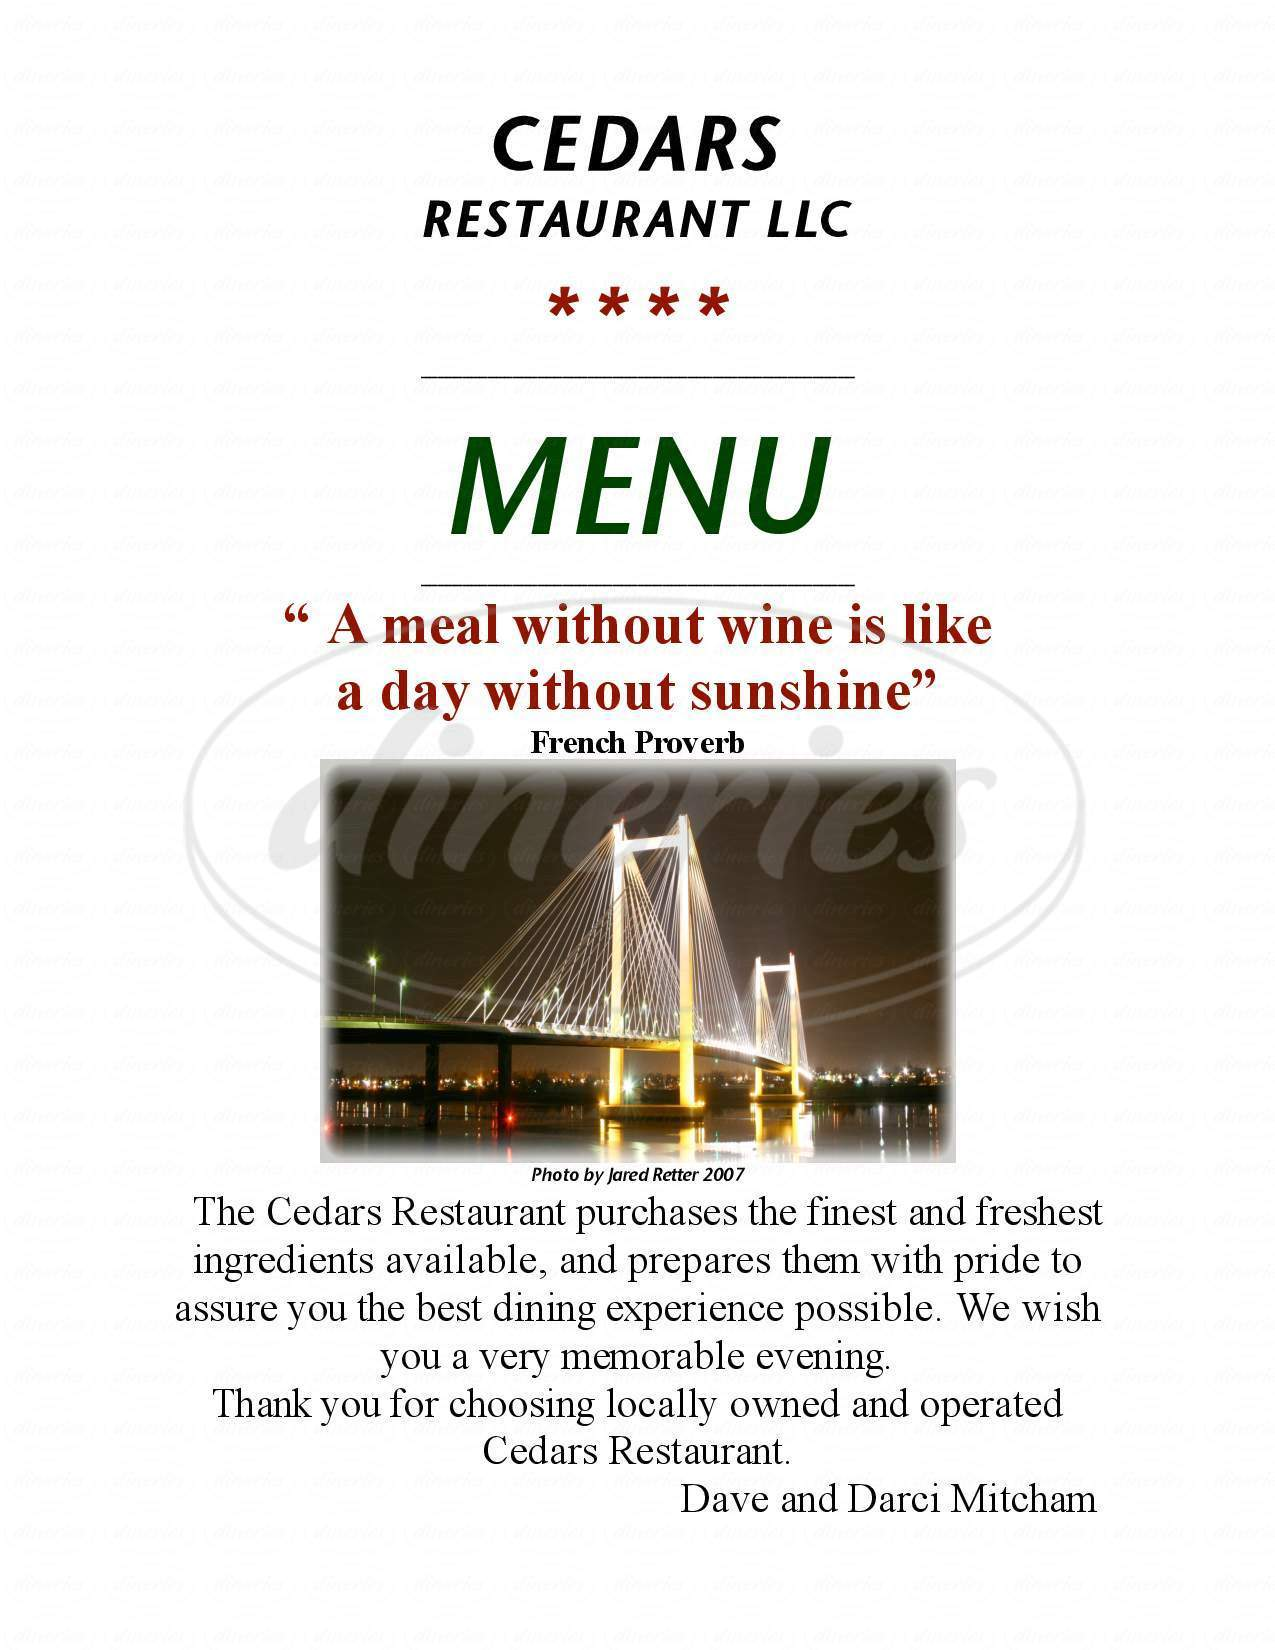 menu for The Cedars Restaurant